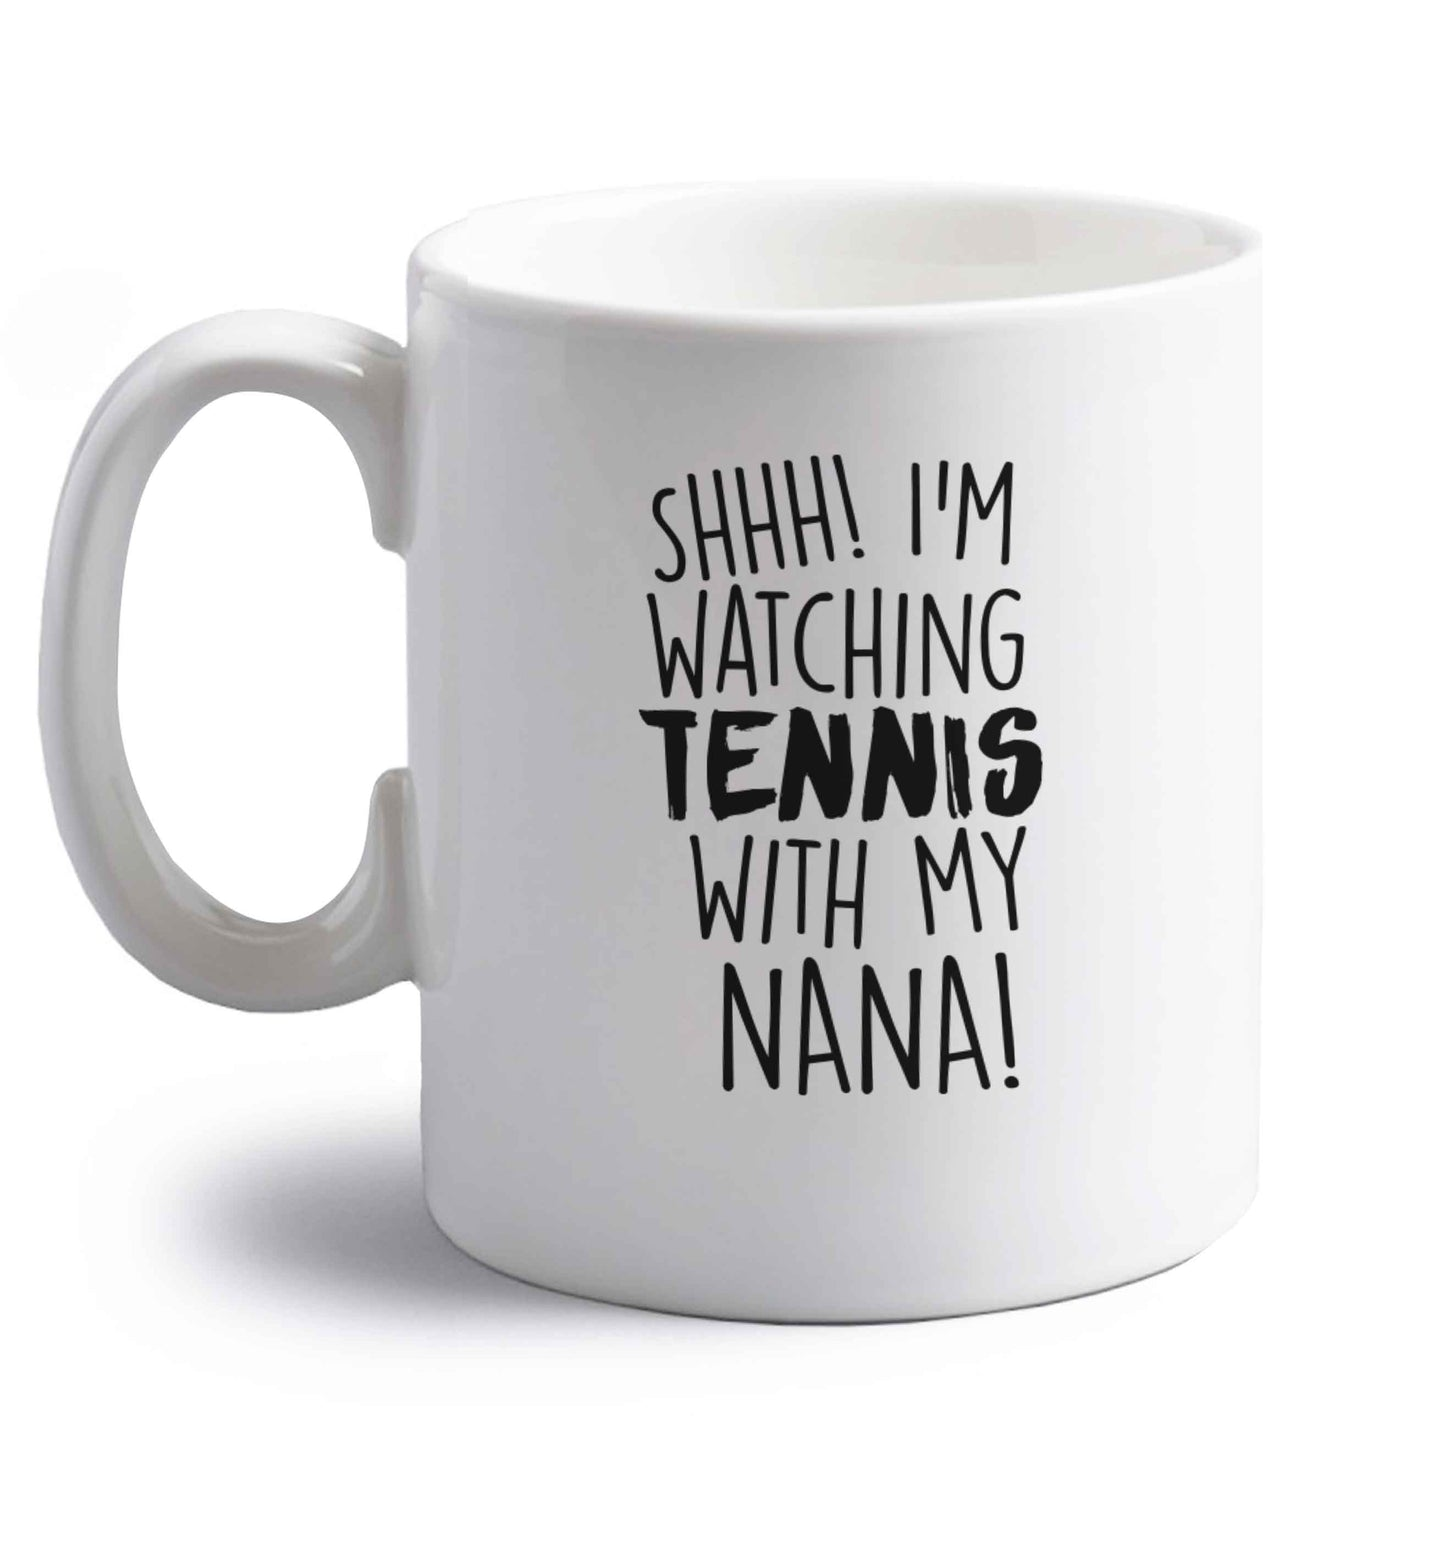 Shh! I'm watching tennis with my nana! right handed white ceramic mug